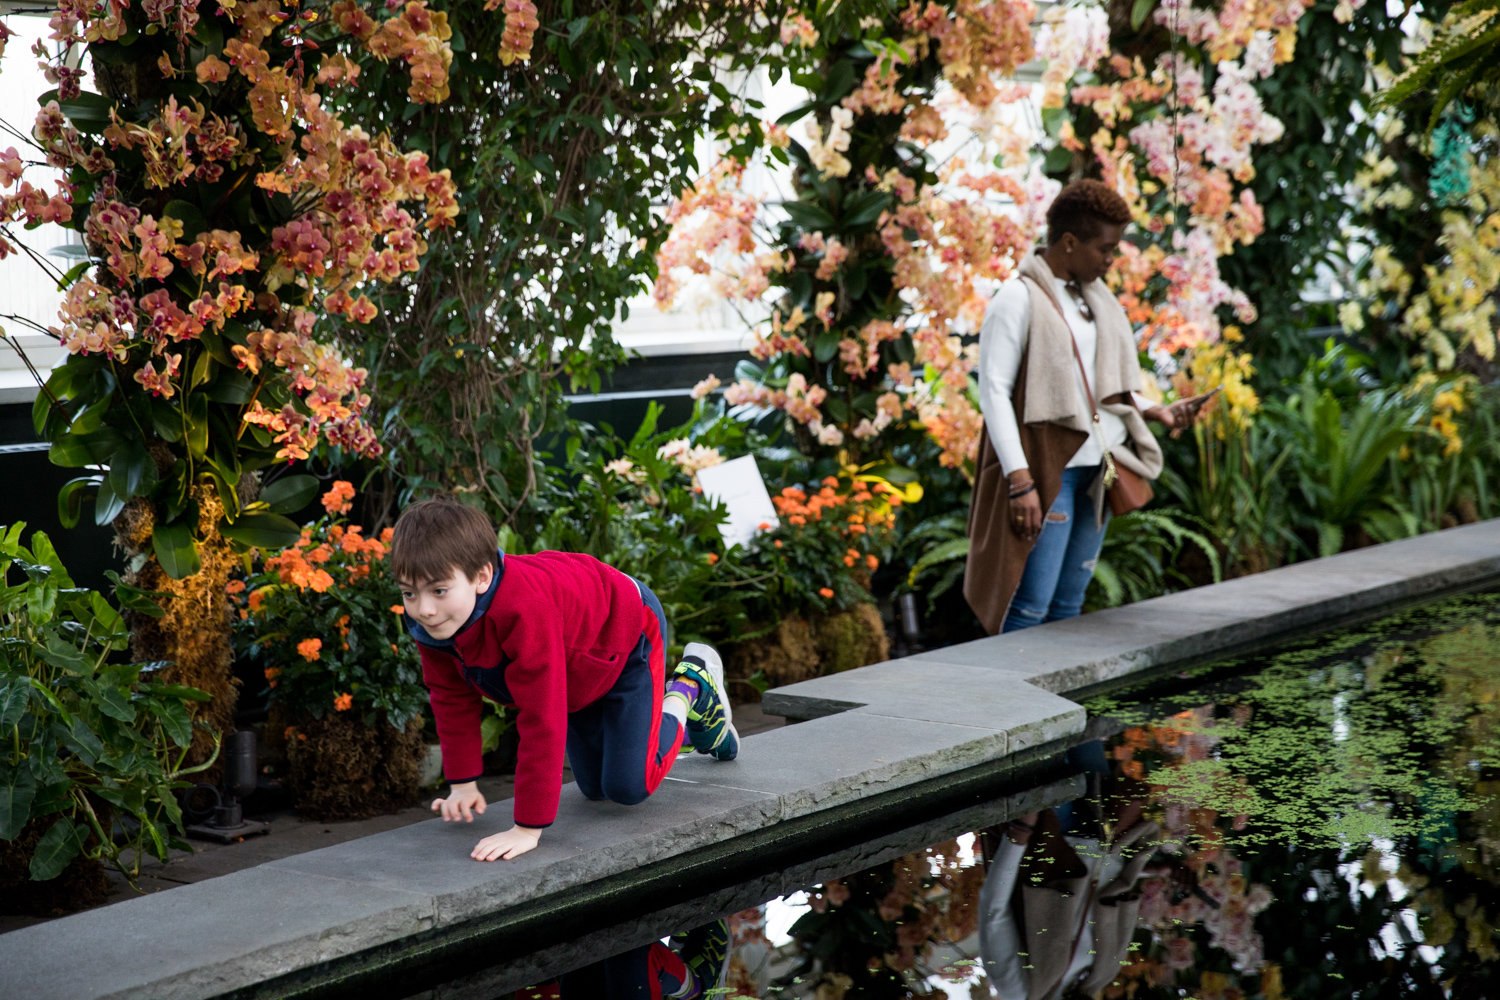 Visitors explore 'The Orchid Show' in the Enid A. Haupt Conservatory at the New York Botanical Garden.